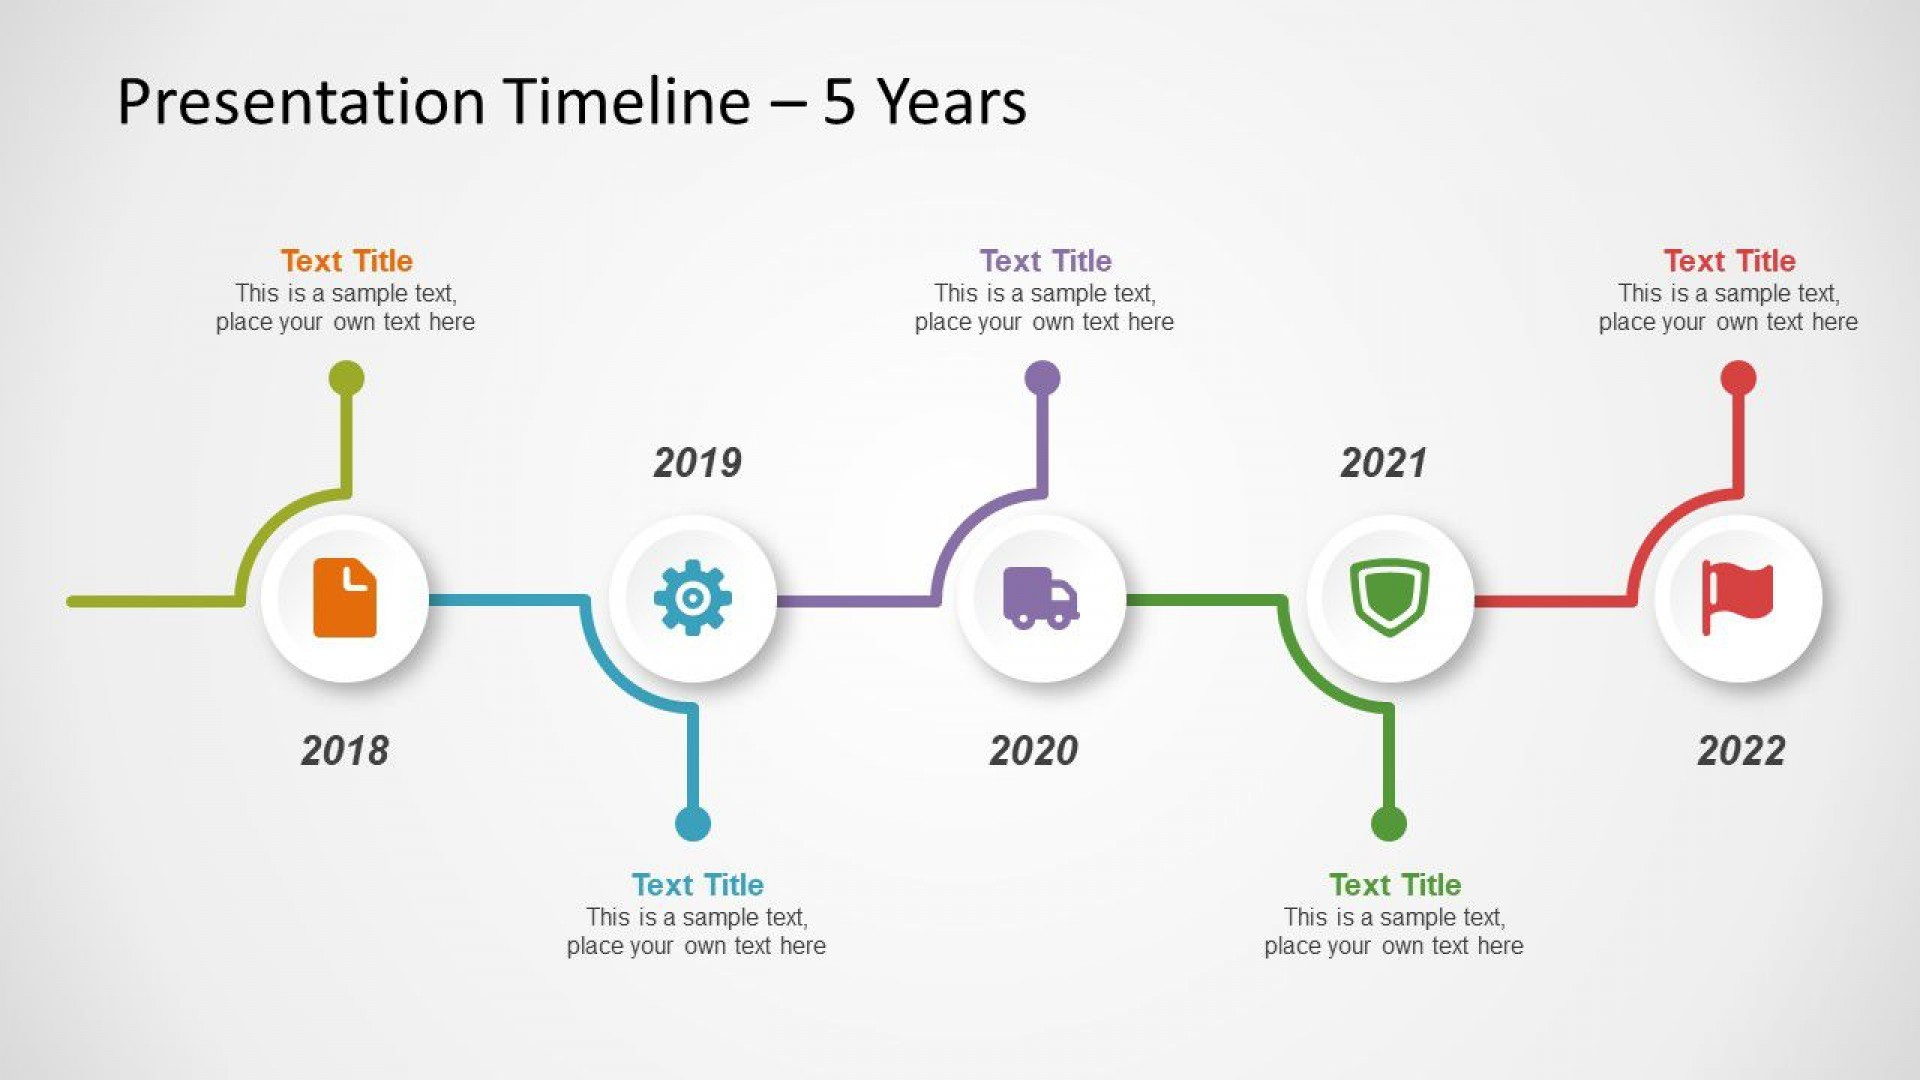 005 Impressive Timeline Powerpoint Template Download Free Image  Project Animated1920